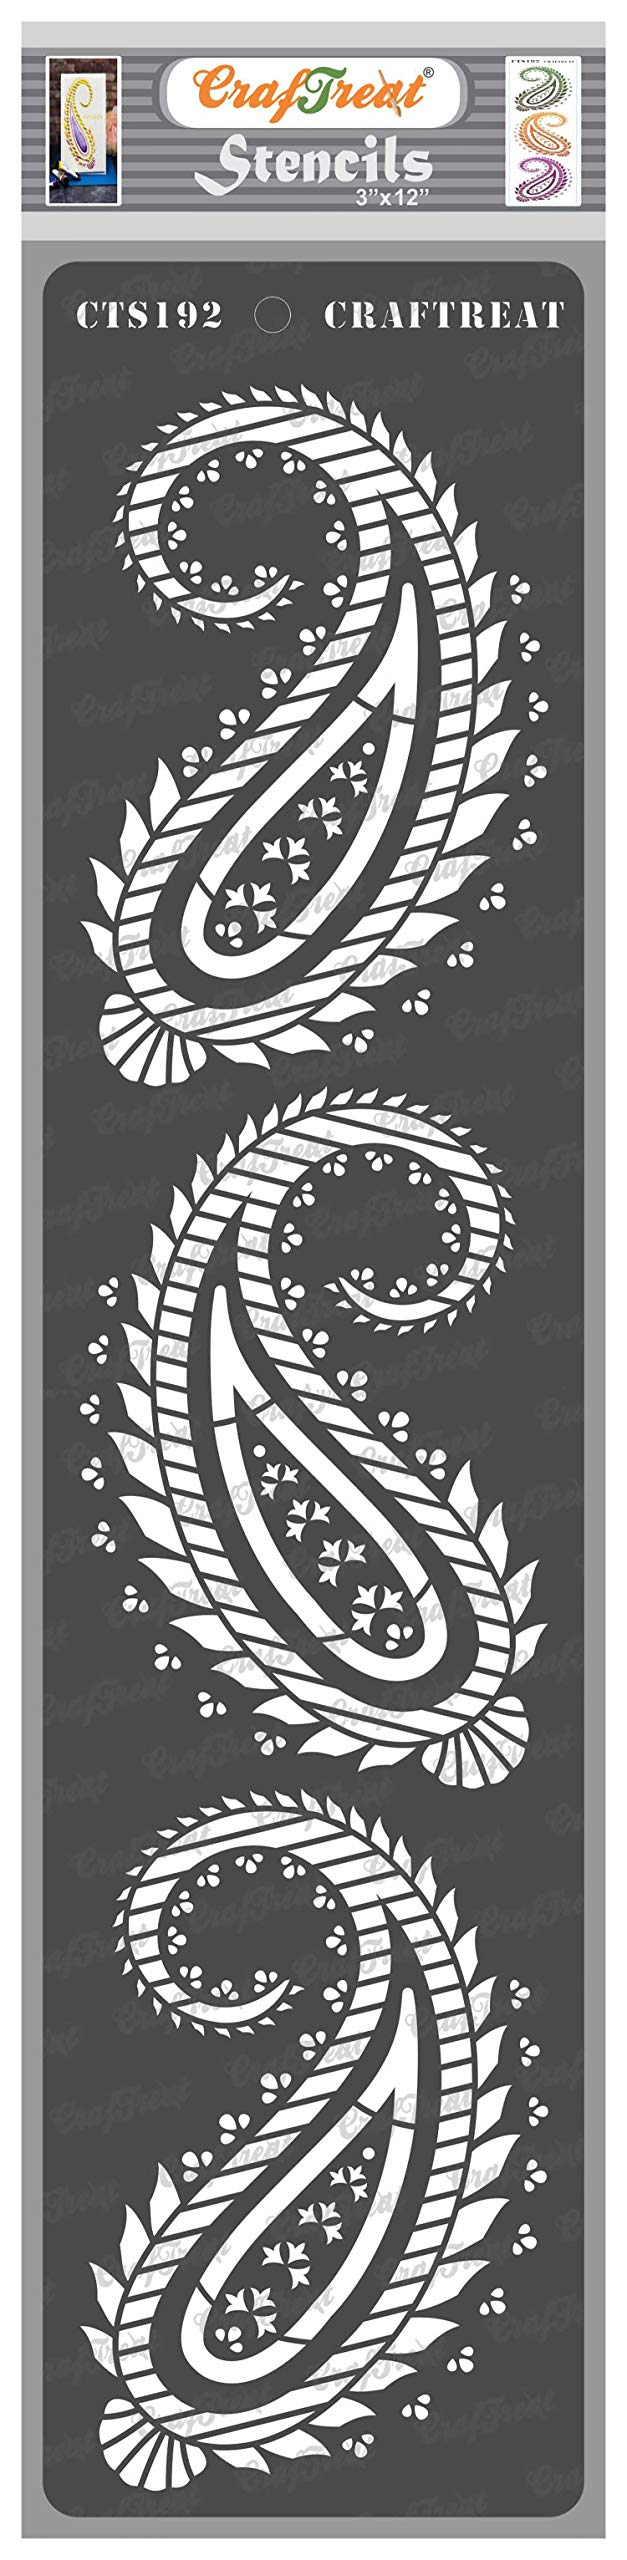 CrafTreat Paisley Stencils for painting on Wood, Canvas, Paper, Fabric, Floor, Wall and Tile - Paisley Border - 3x12 Inches - Reusable DIY Art and Craft Stencils Borders - Paisley Template Stencil